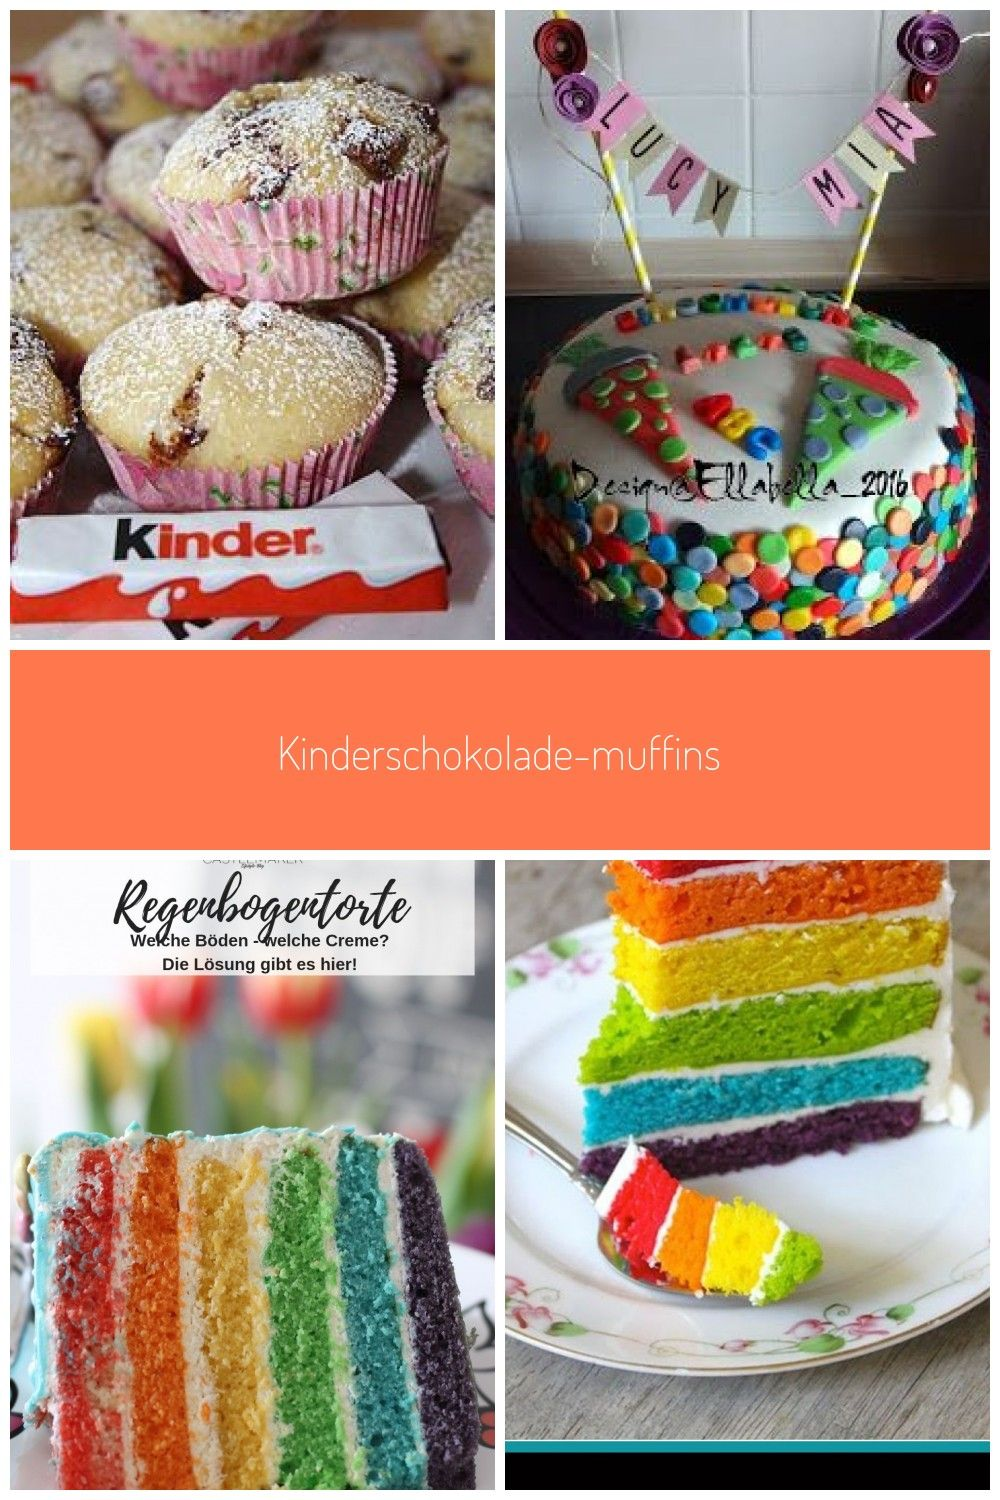 All Kinds Of Hairstyles For Women Best Trends Kinder Schokolade Kinderschokolade Muffins Kinderschokolade